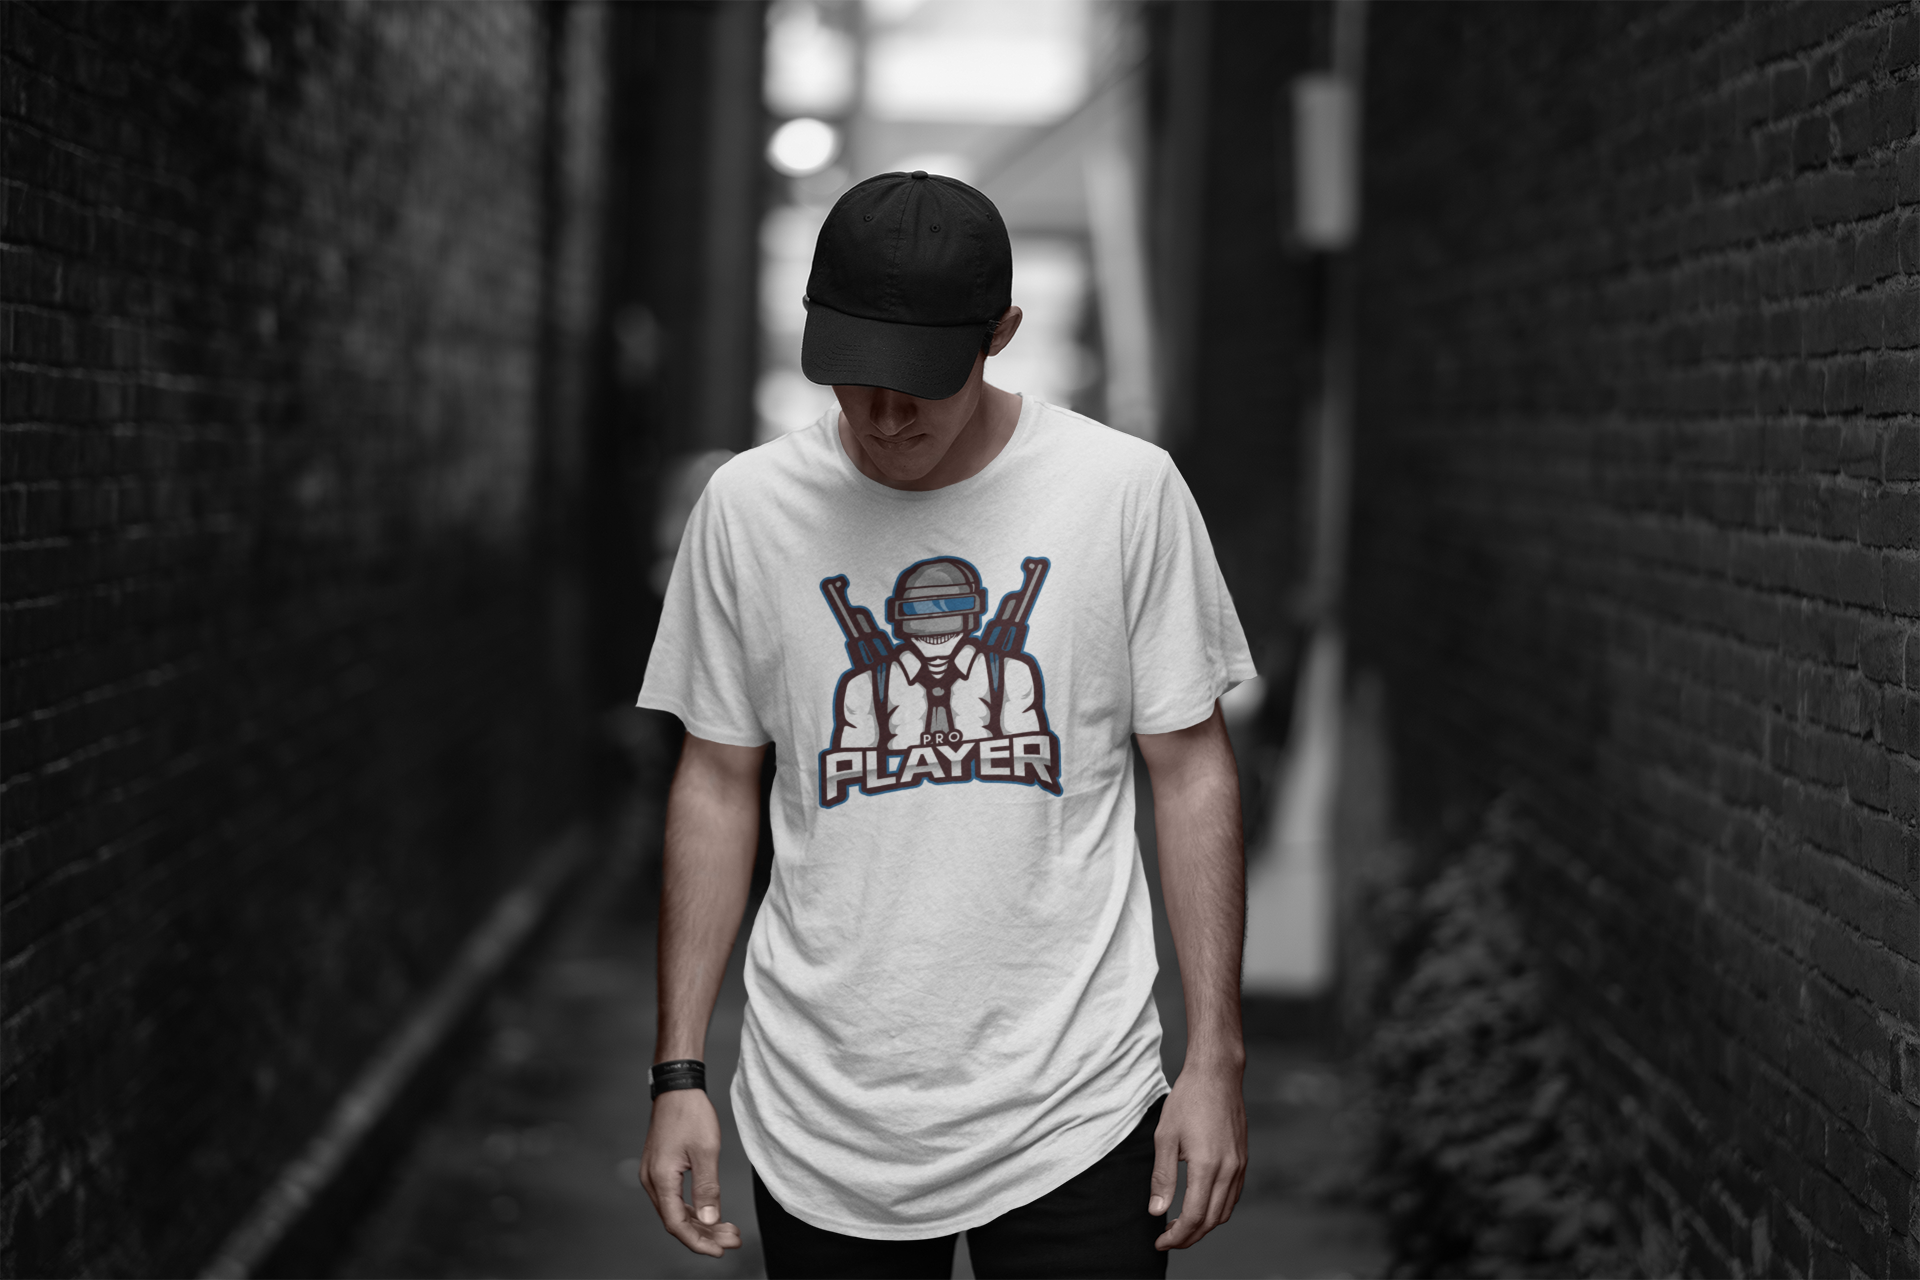 I will create 6 professional 3d mockups for T-shirts